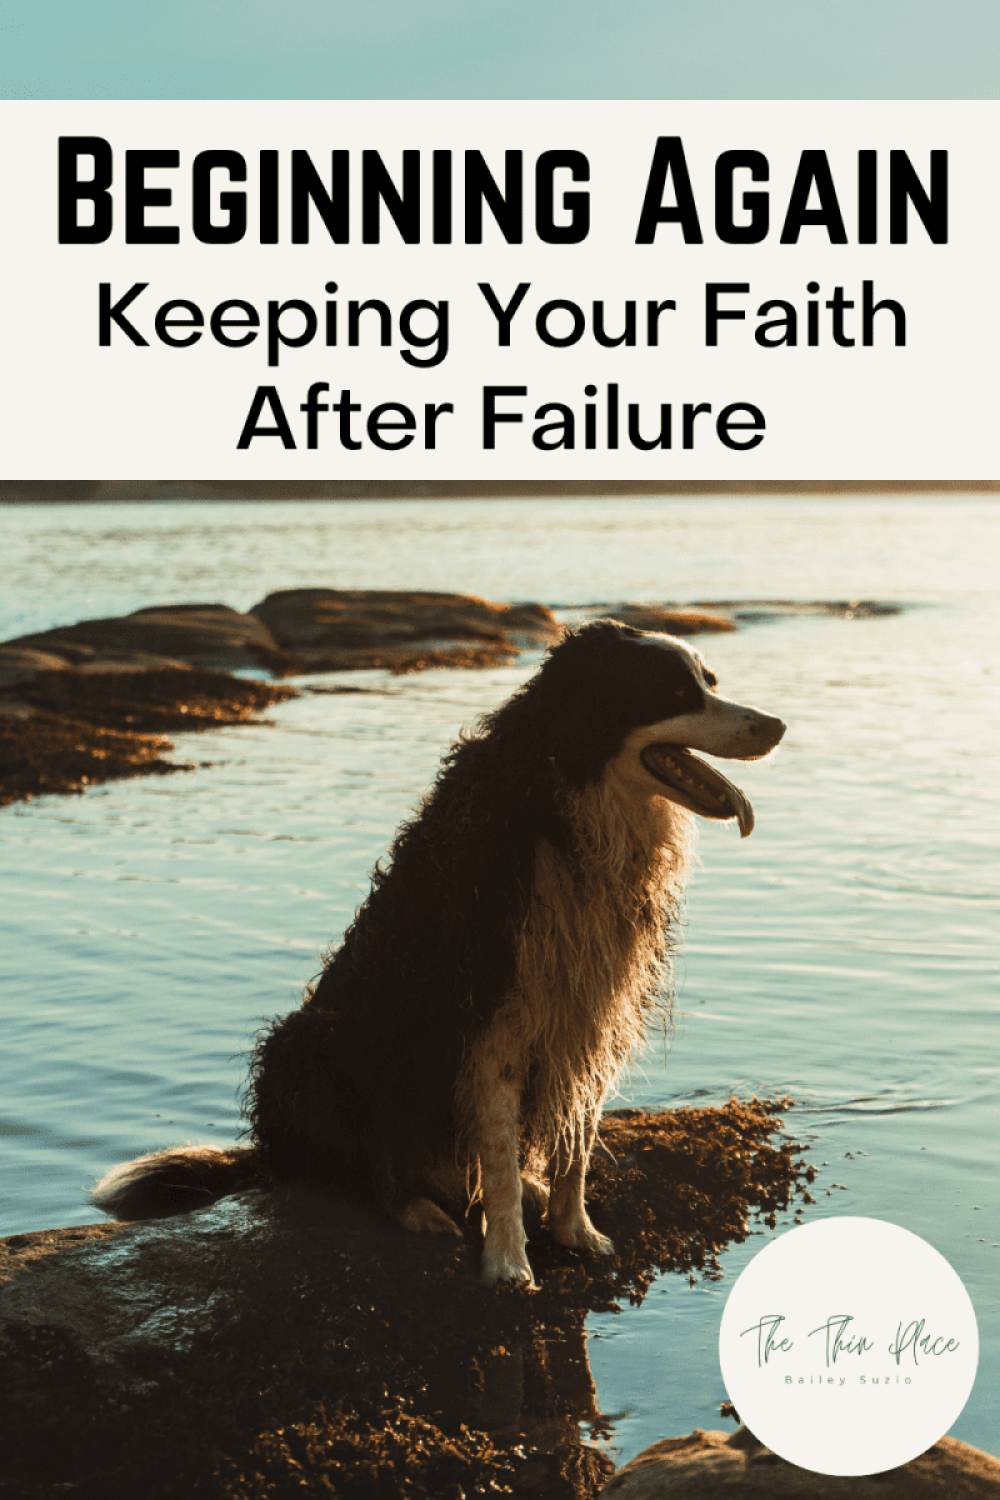 How to begin again and seek a fresh start after failure #devotional #christianlife #christianity#christianwomen #christianencouragement